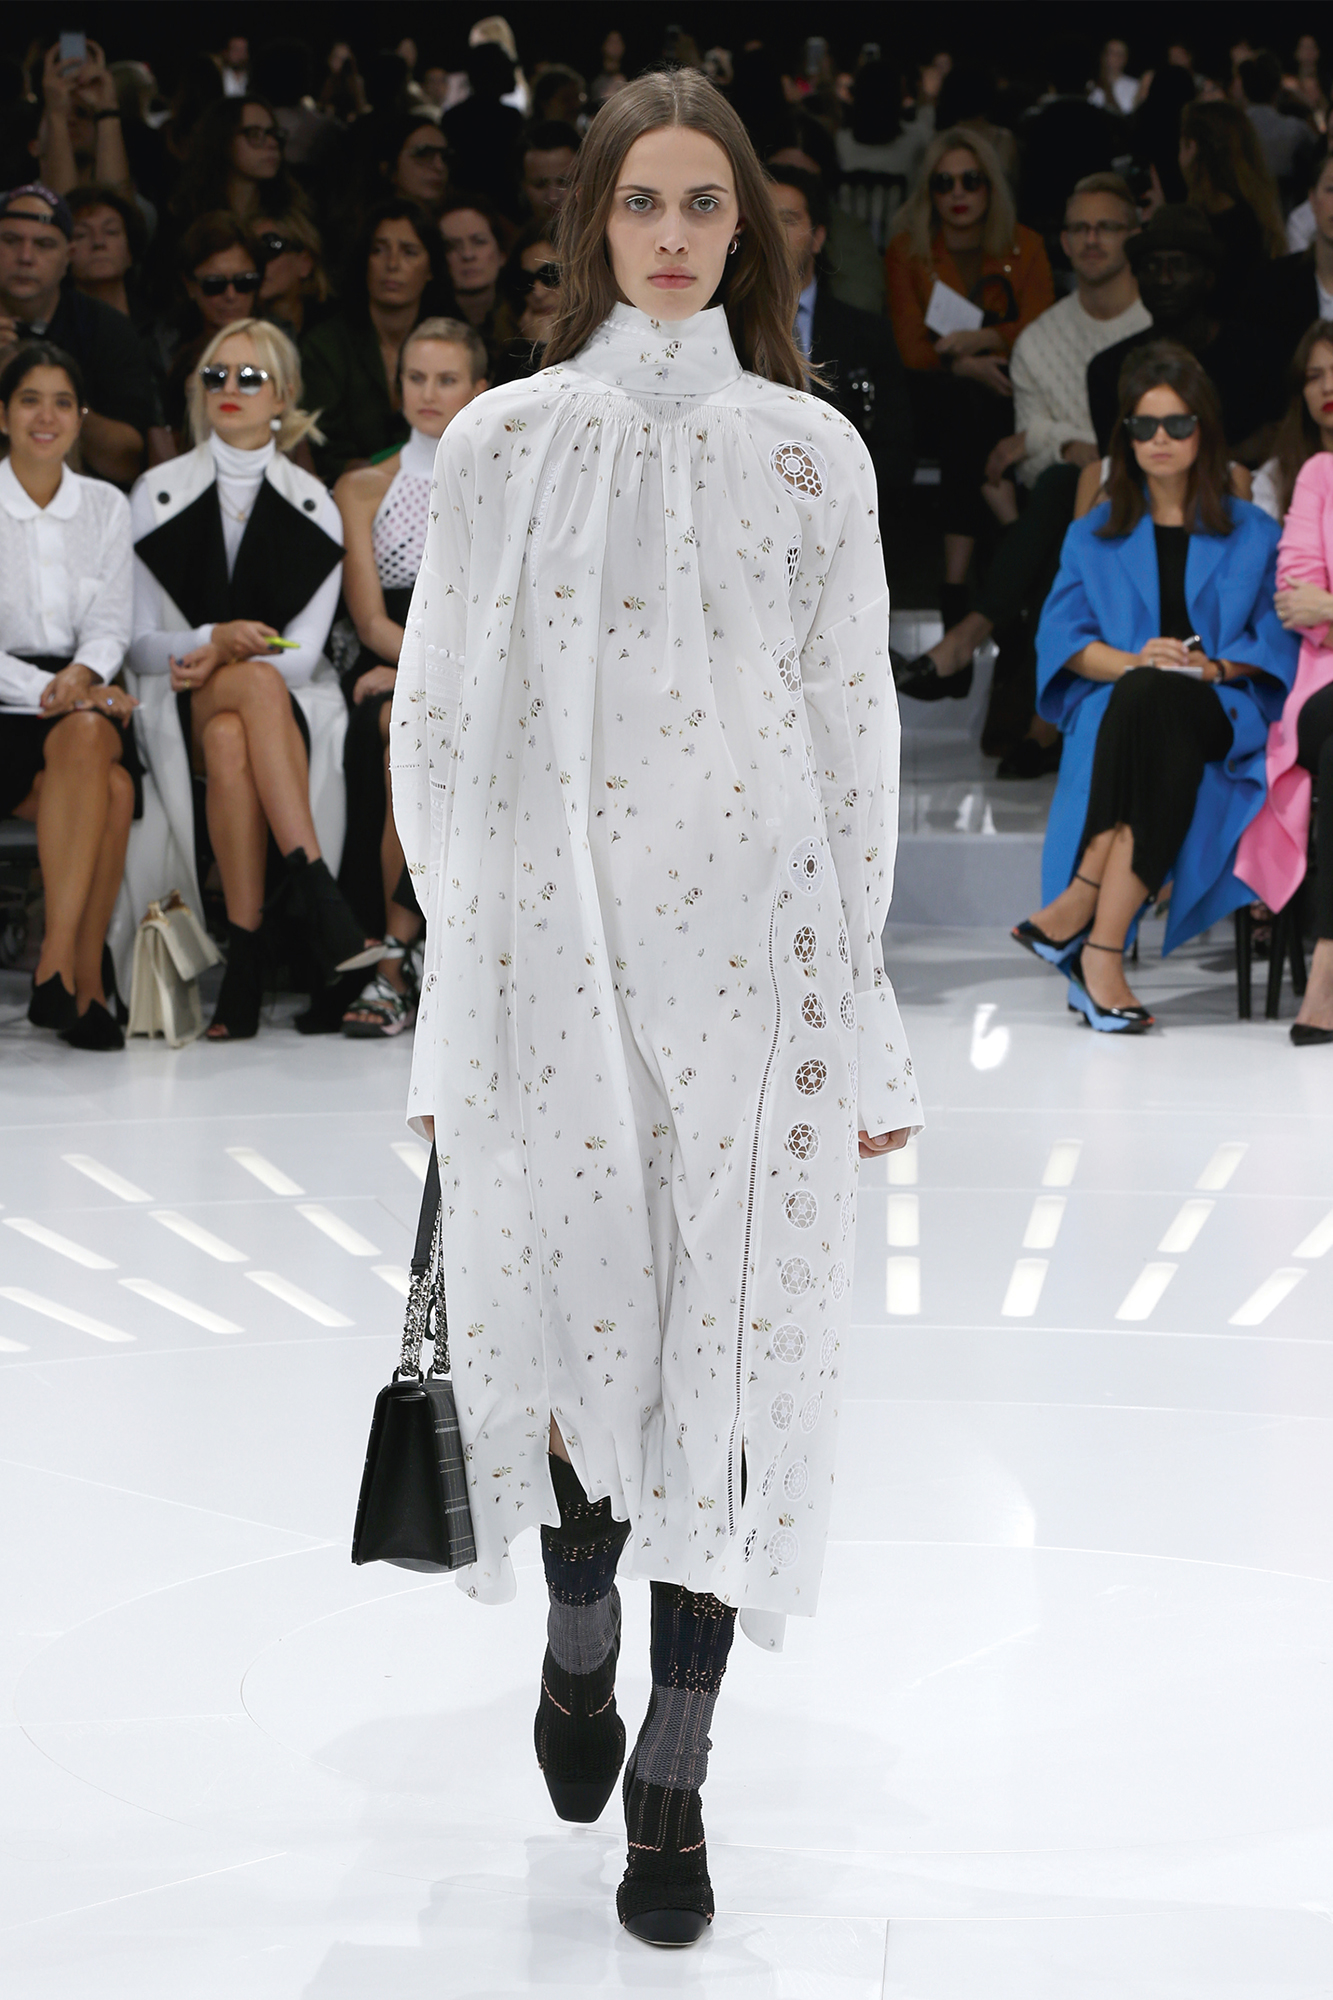 christian-dior-spring-summer-RTW-collection (2)